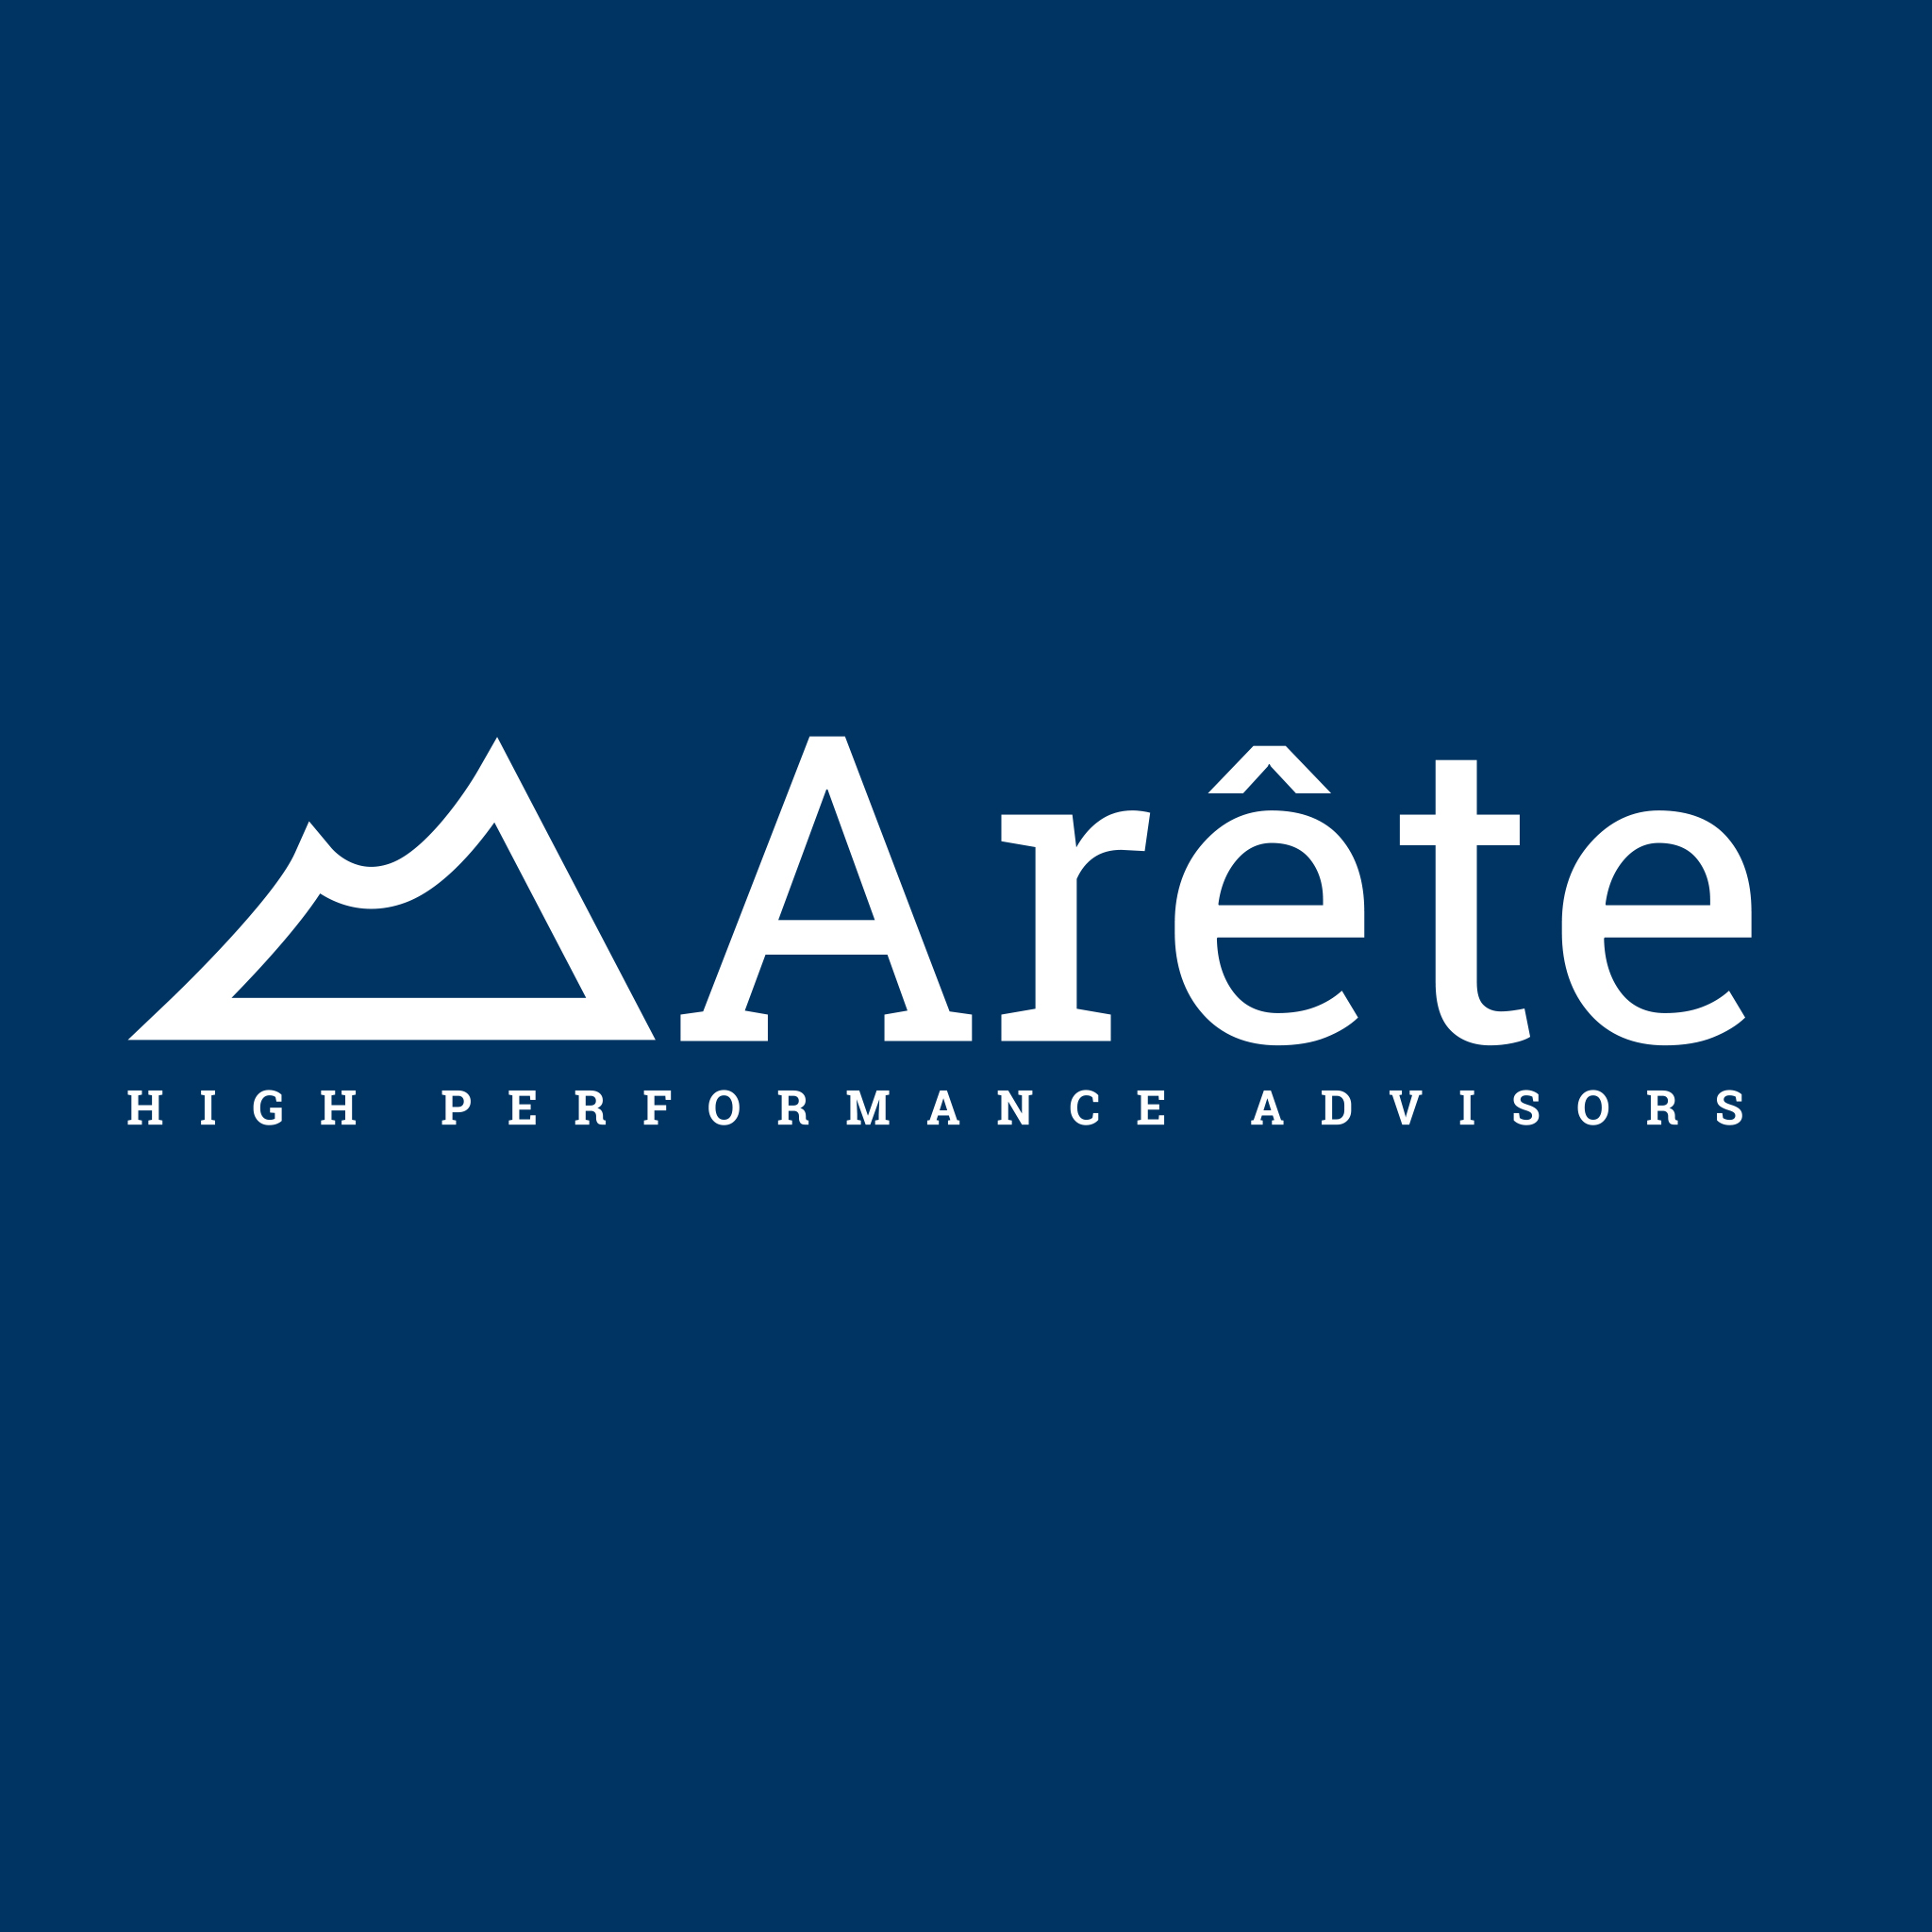 Arête - High Performance Advisors